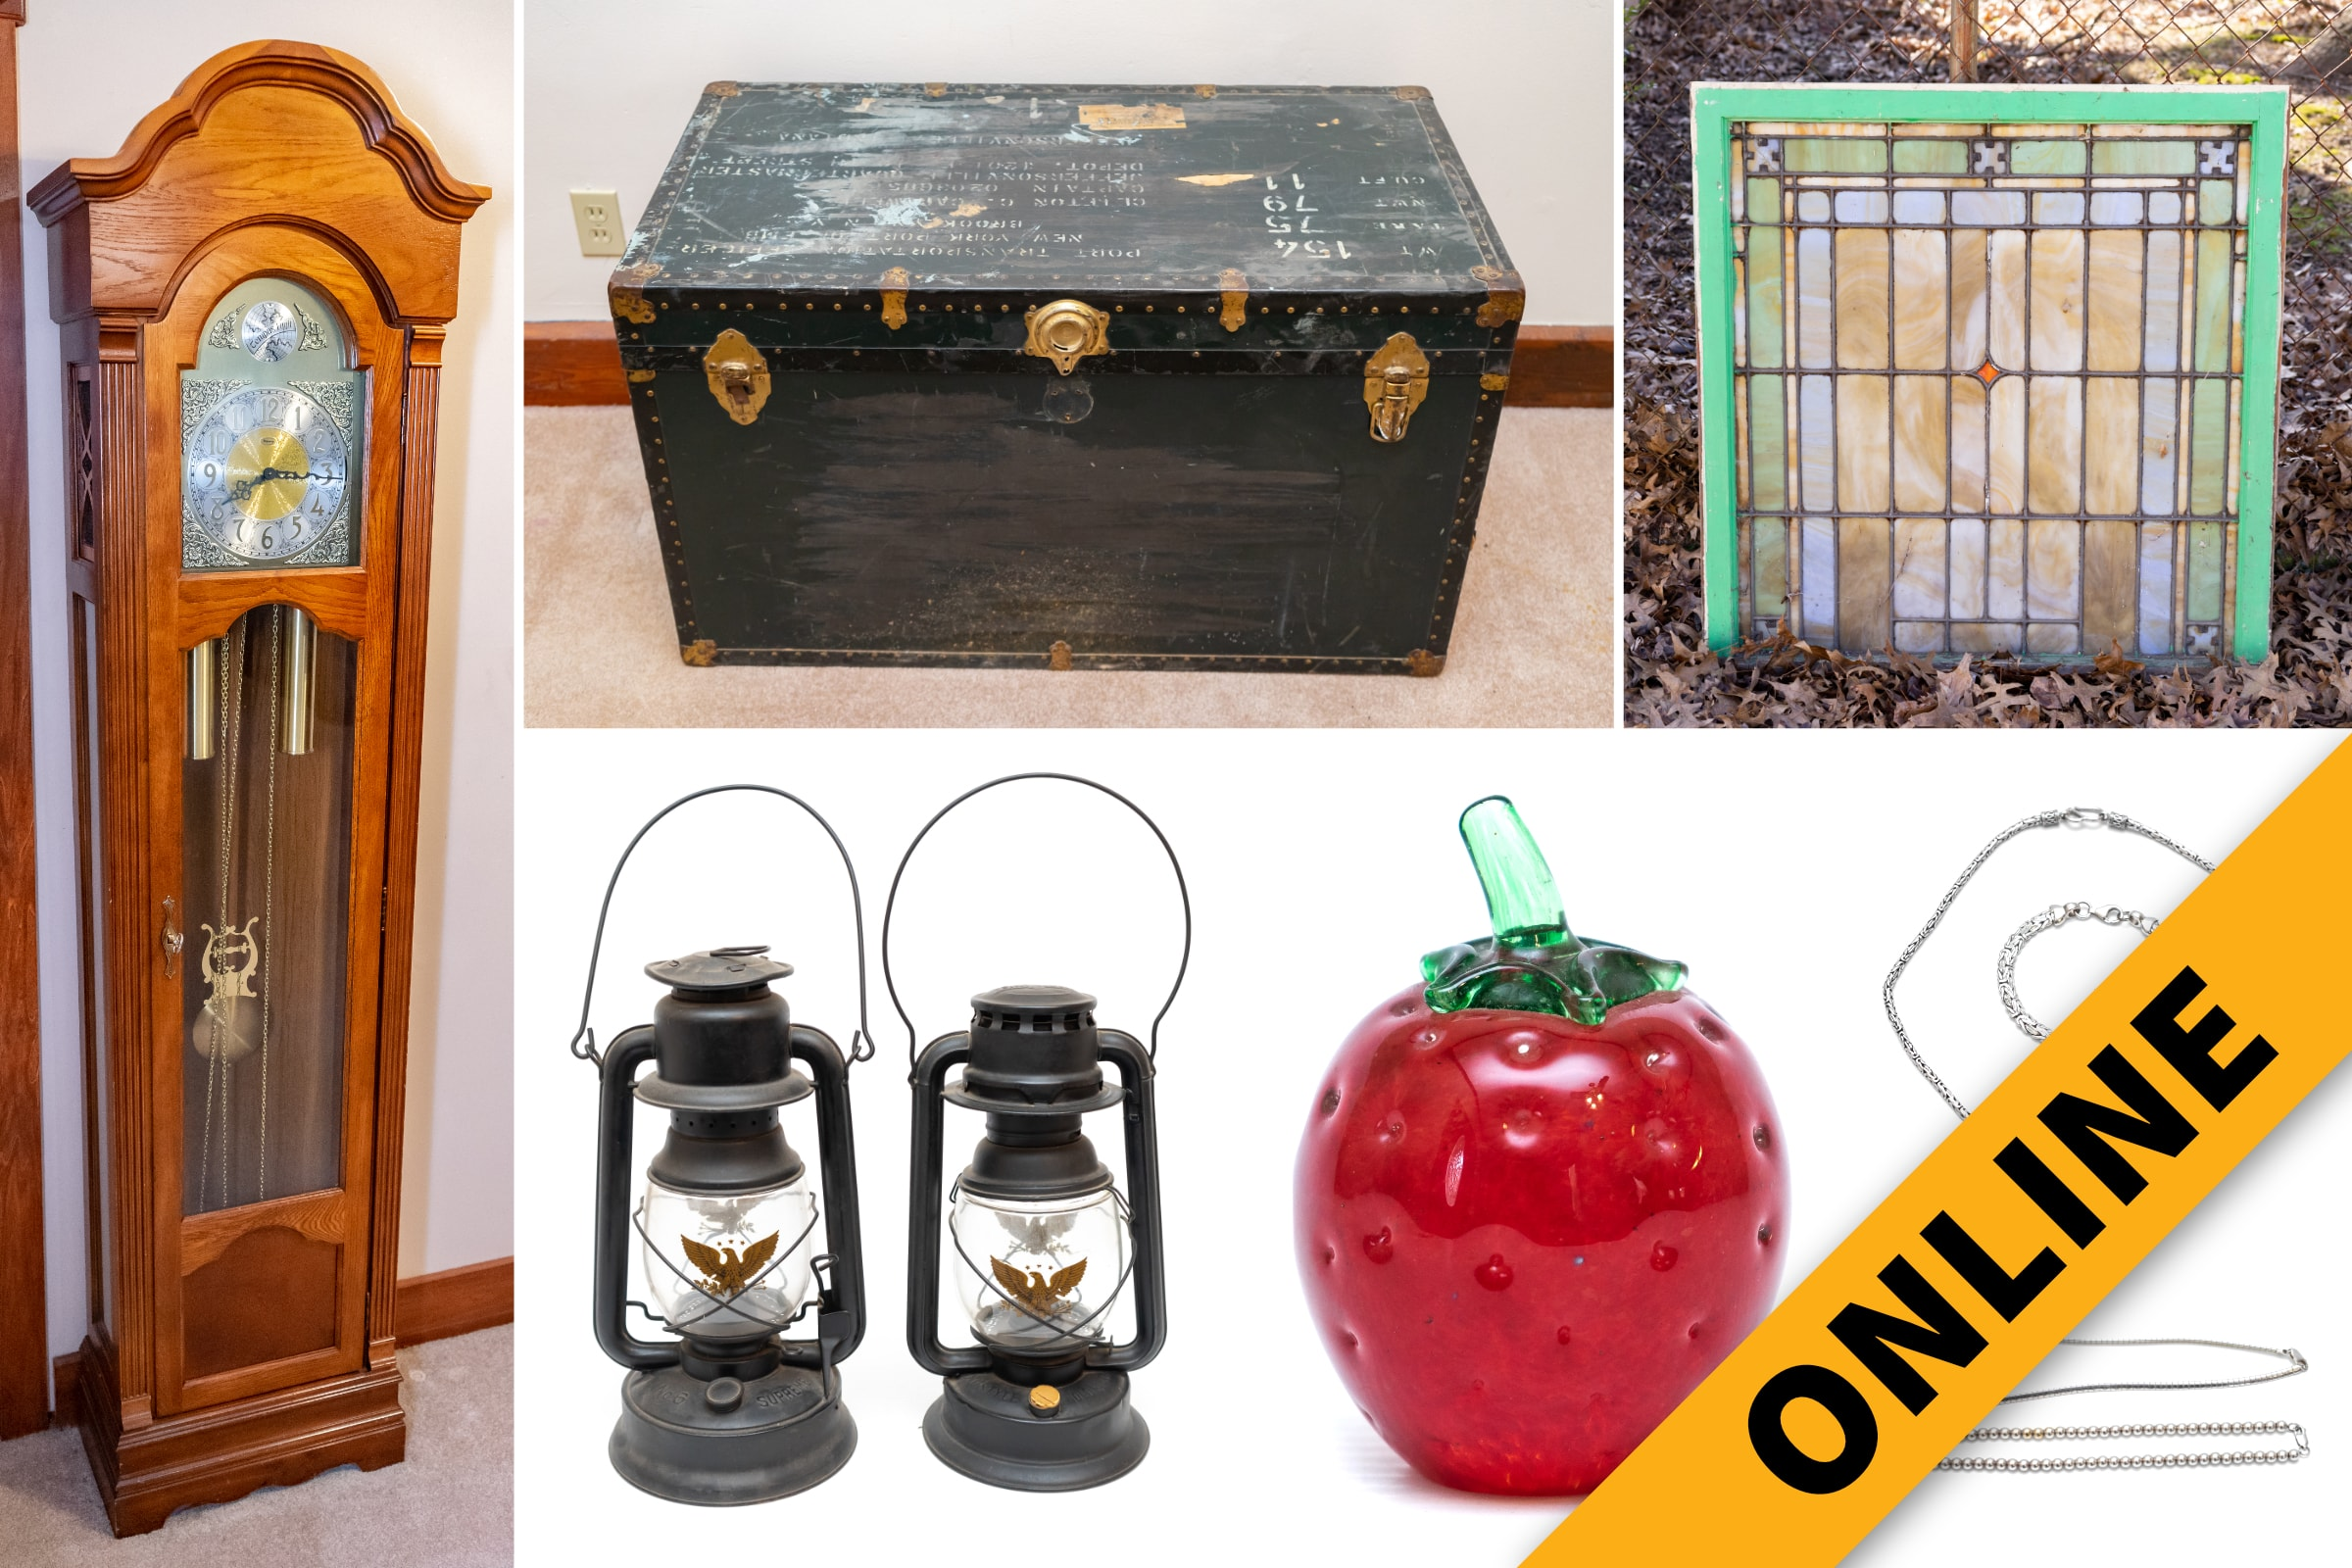 Parr Estate Personal Property Online Auction